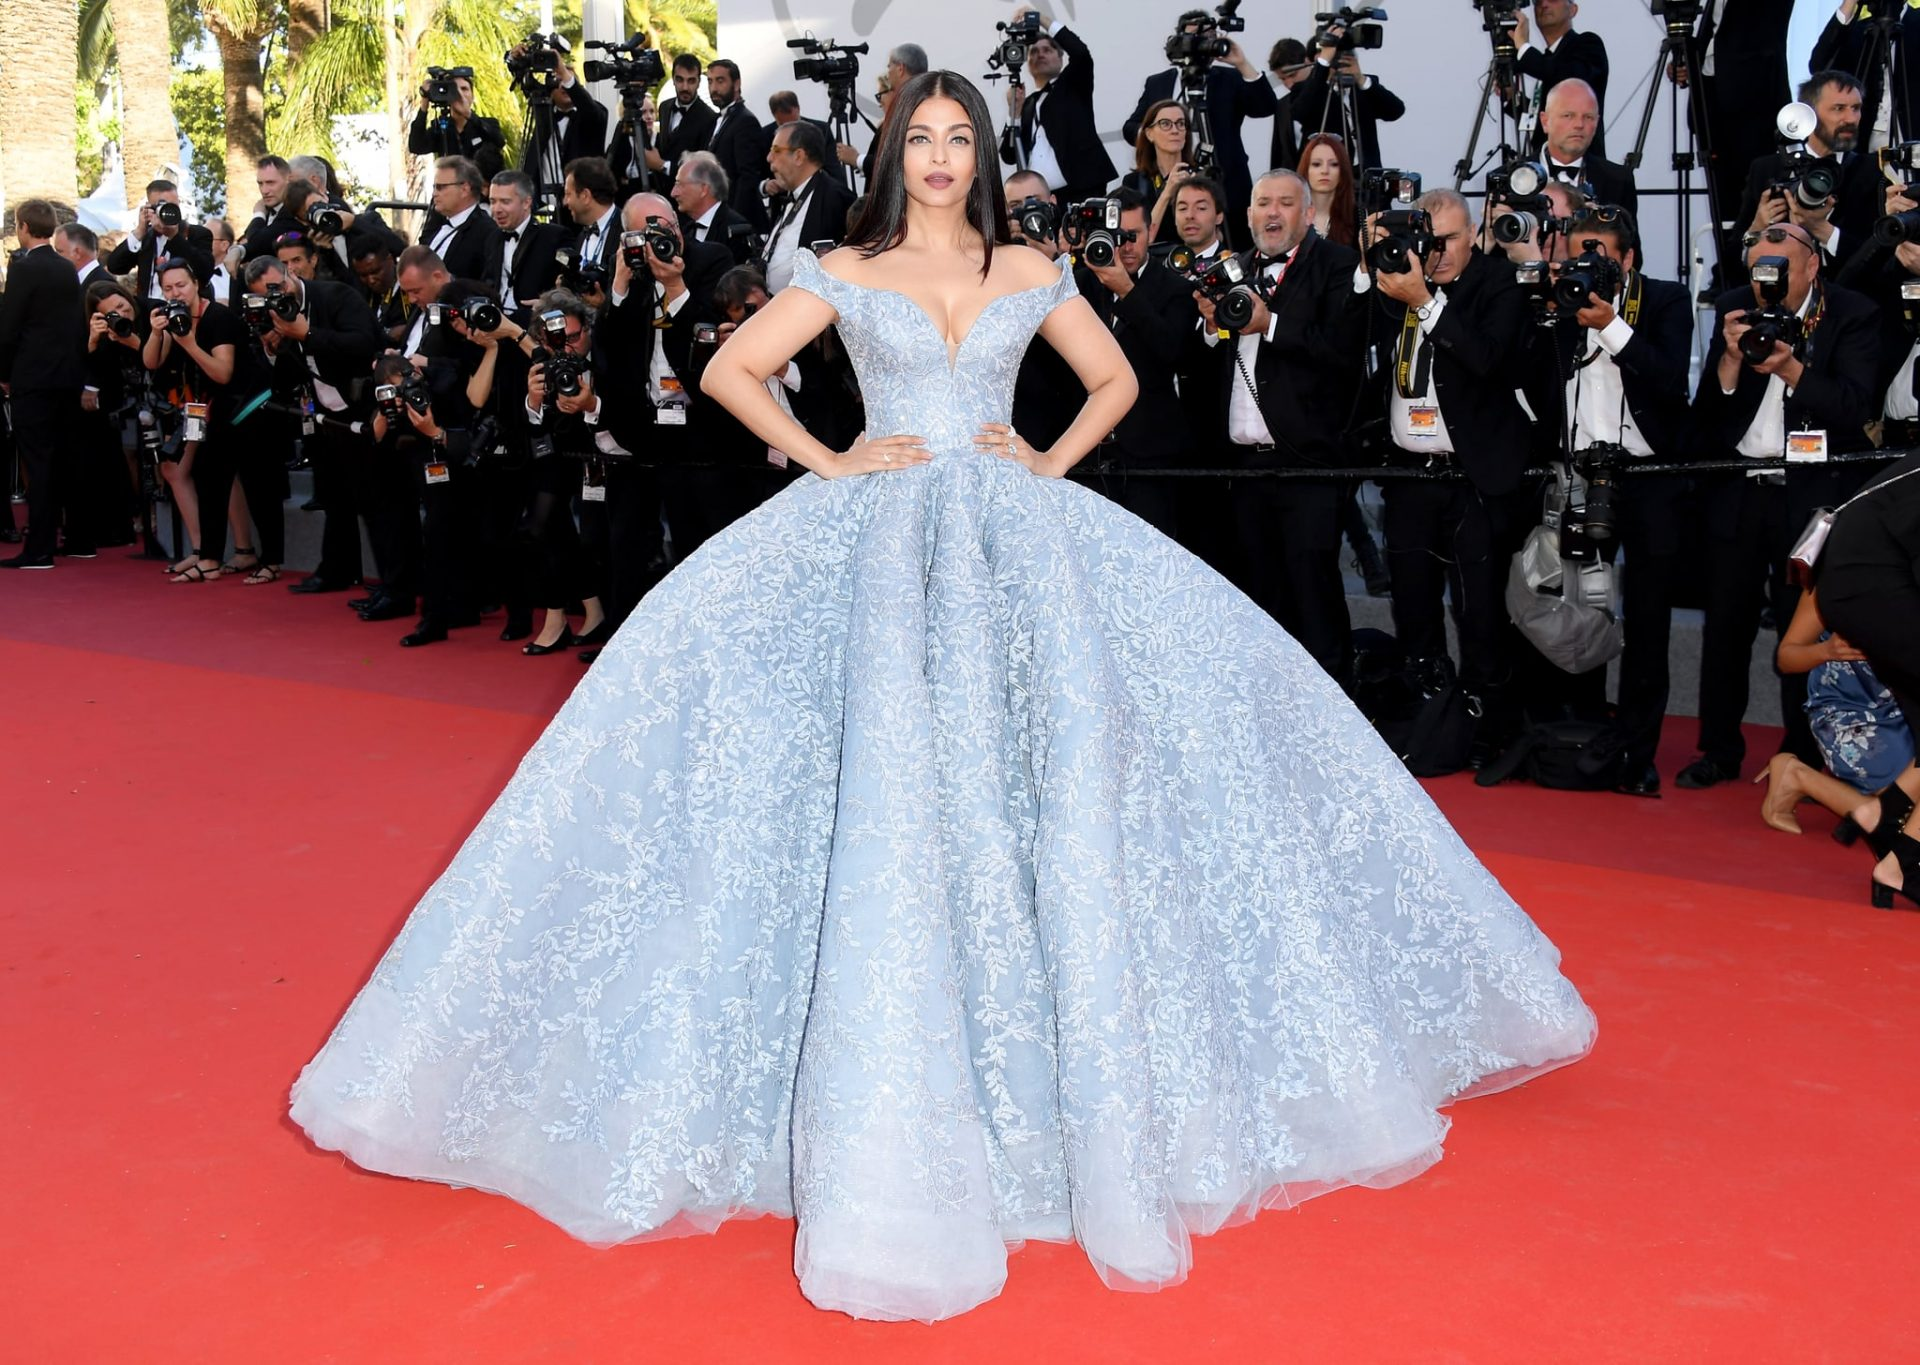 Aishwayra Rai in a Michael Cinco original baby blue dress on the red carpet | Luxury Homes by Brittany Corporation